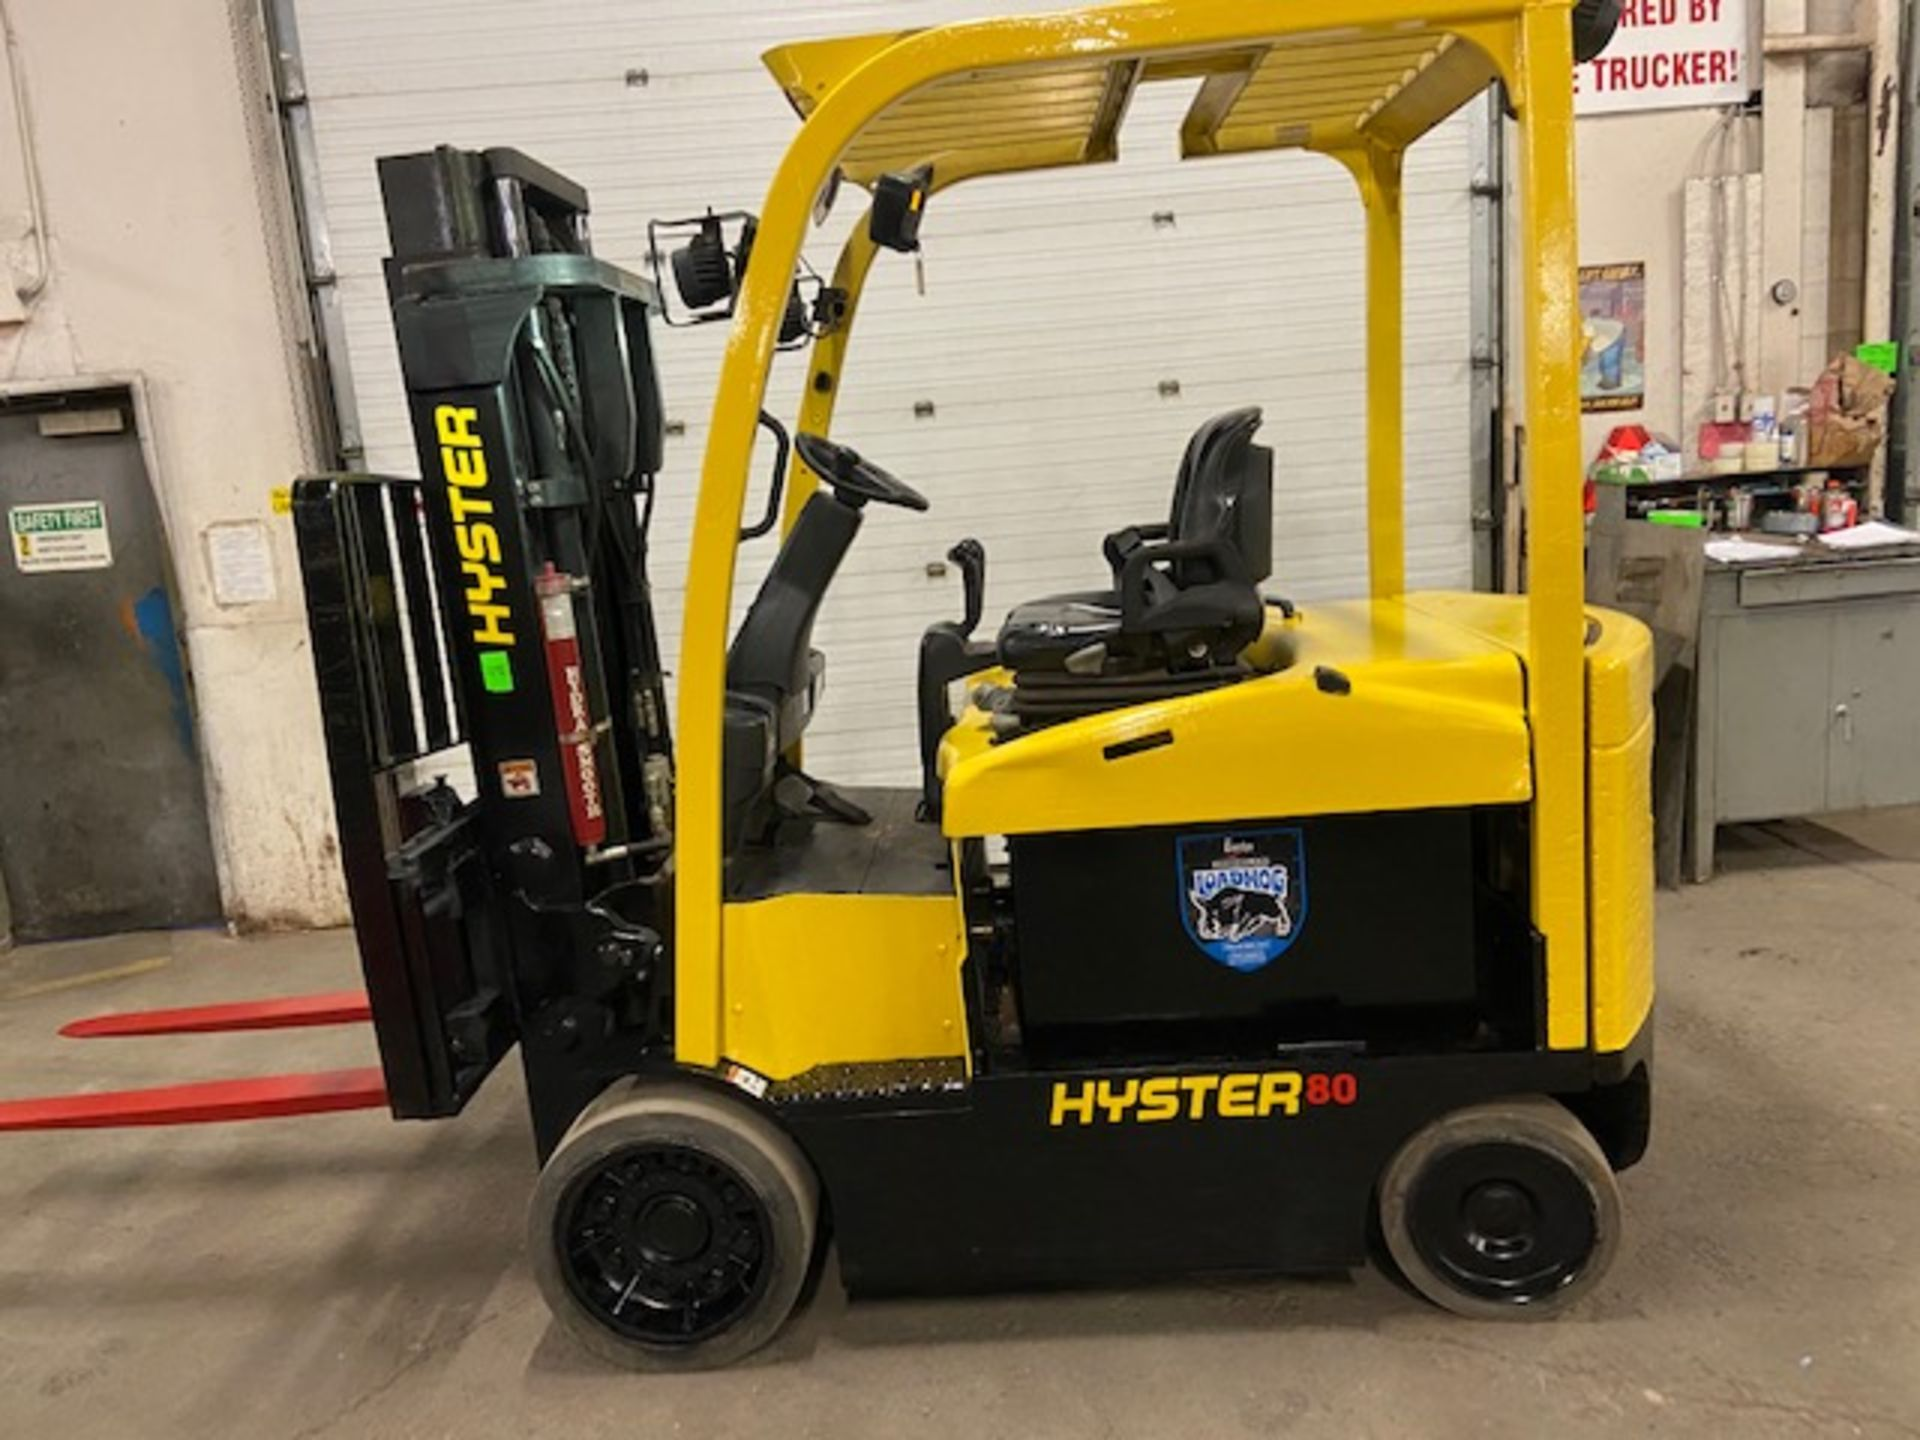 FREE CUSTOMS - 2014 Hyster 8000lbs Capacity Forklift Electric with sideshift and 3 stage mast